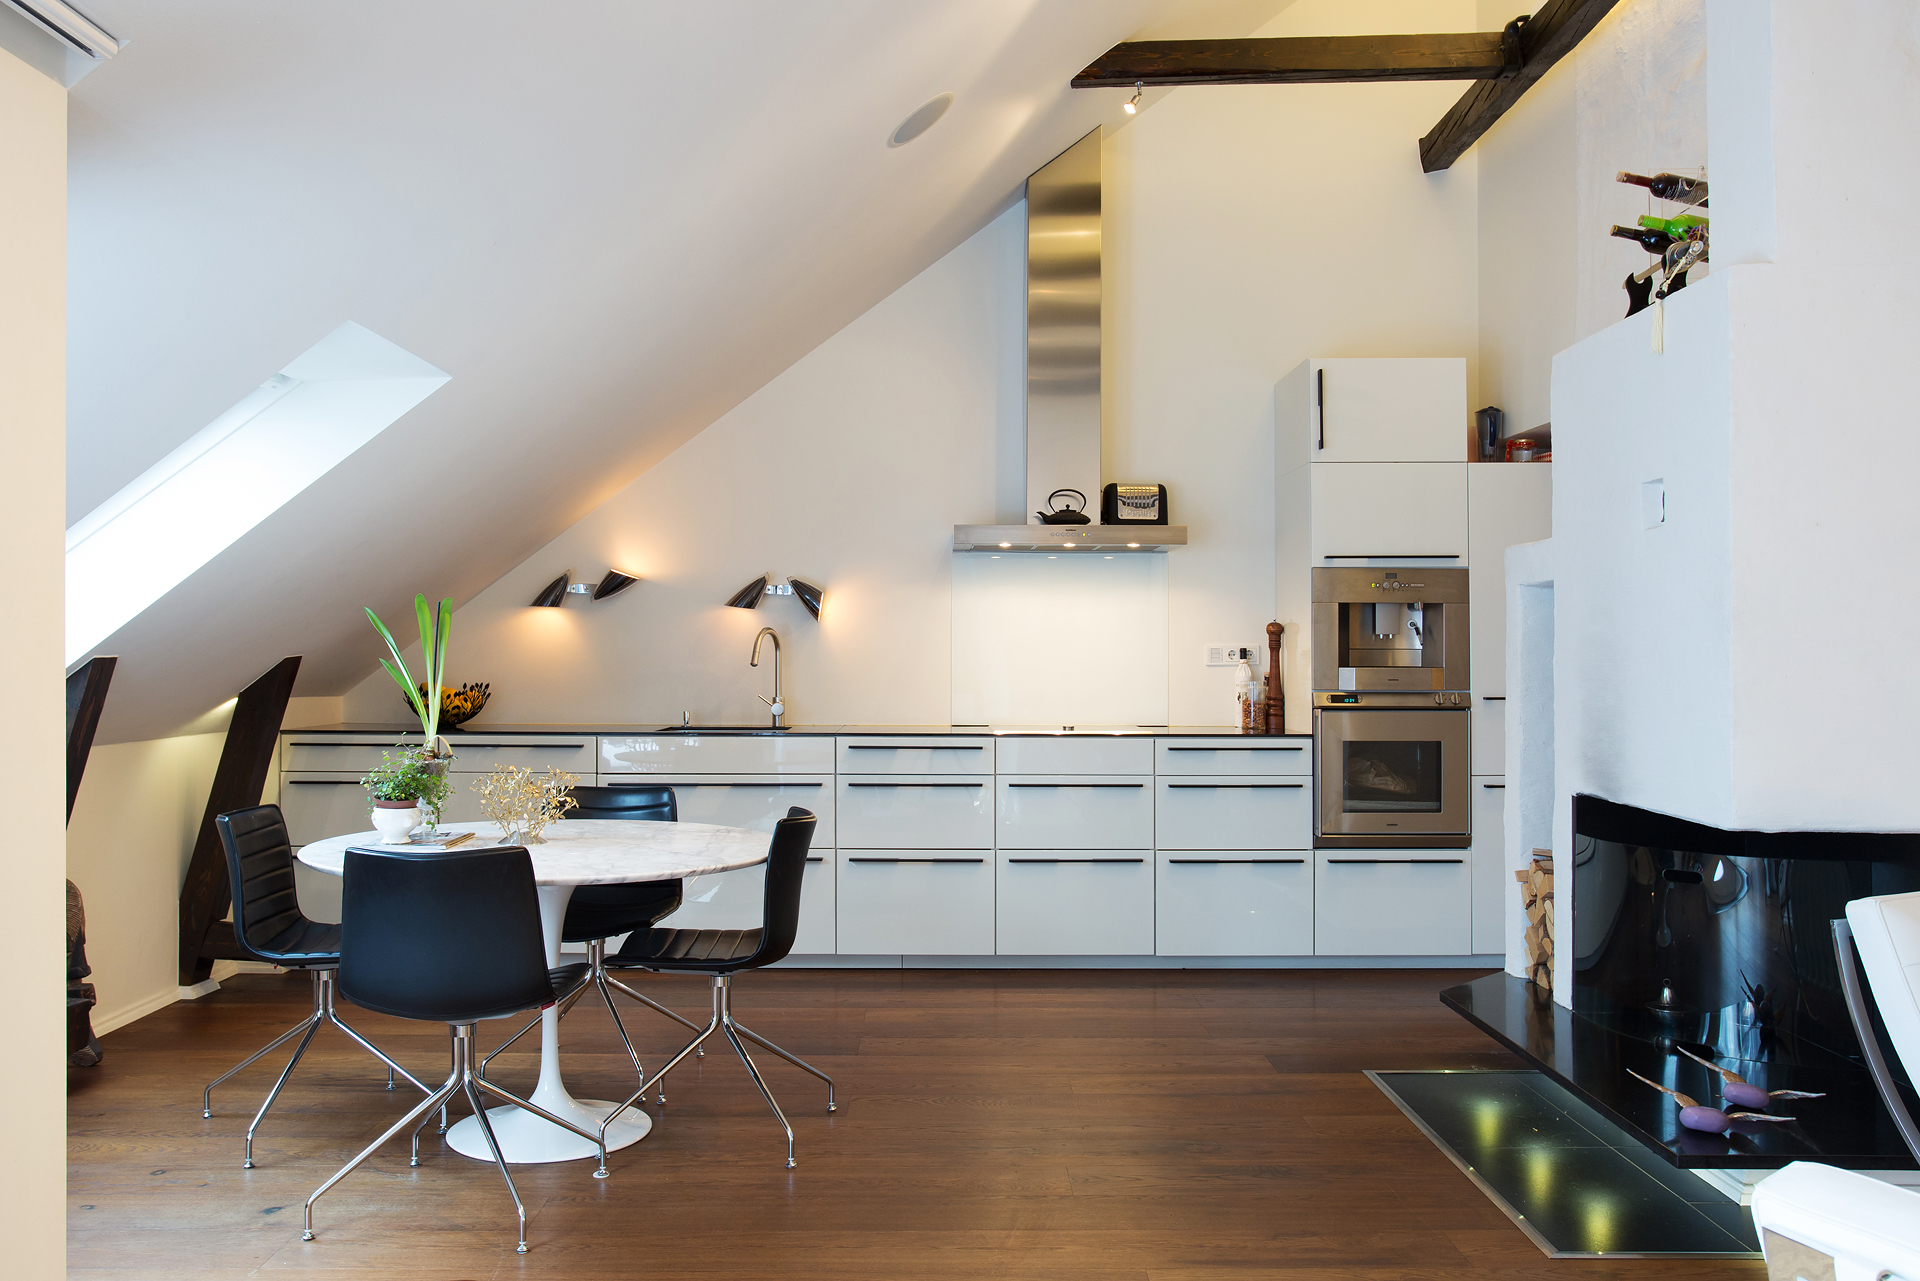 Attic Loft Modern Kitchen